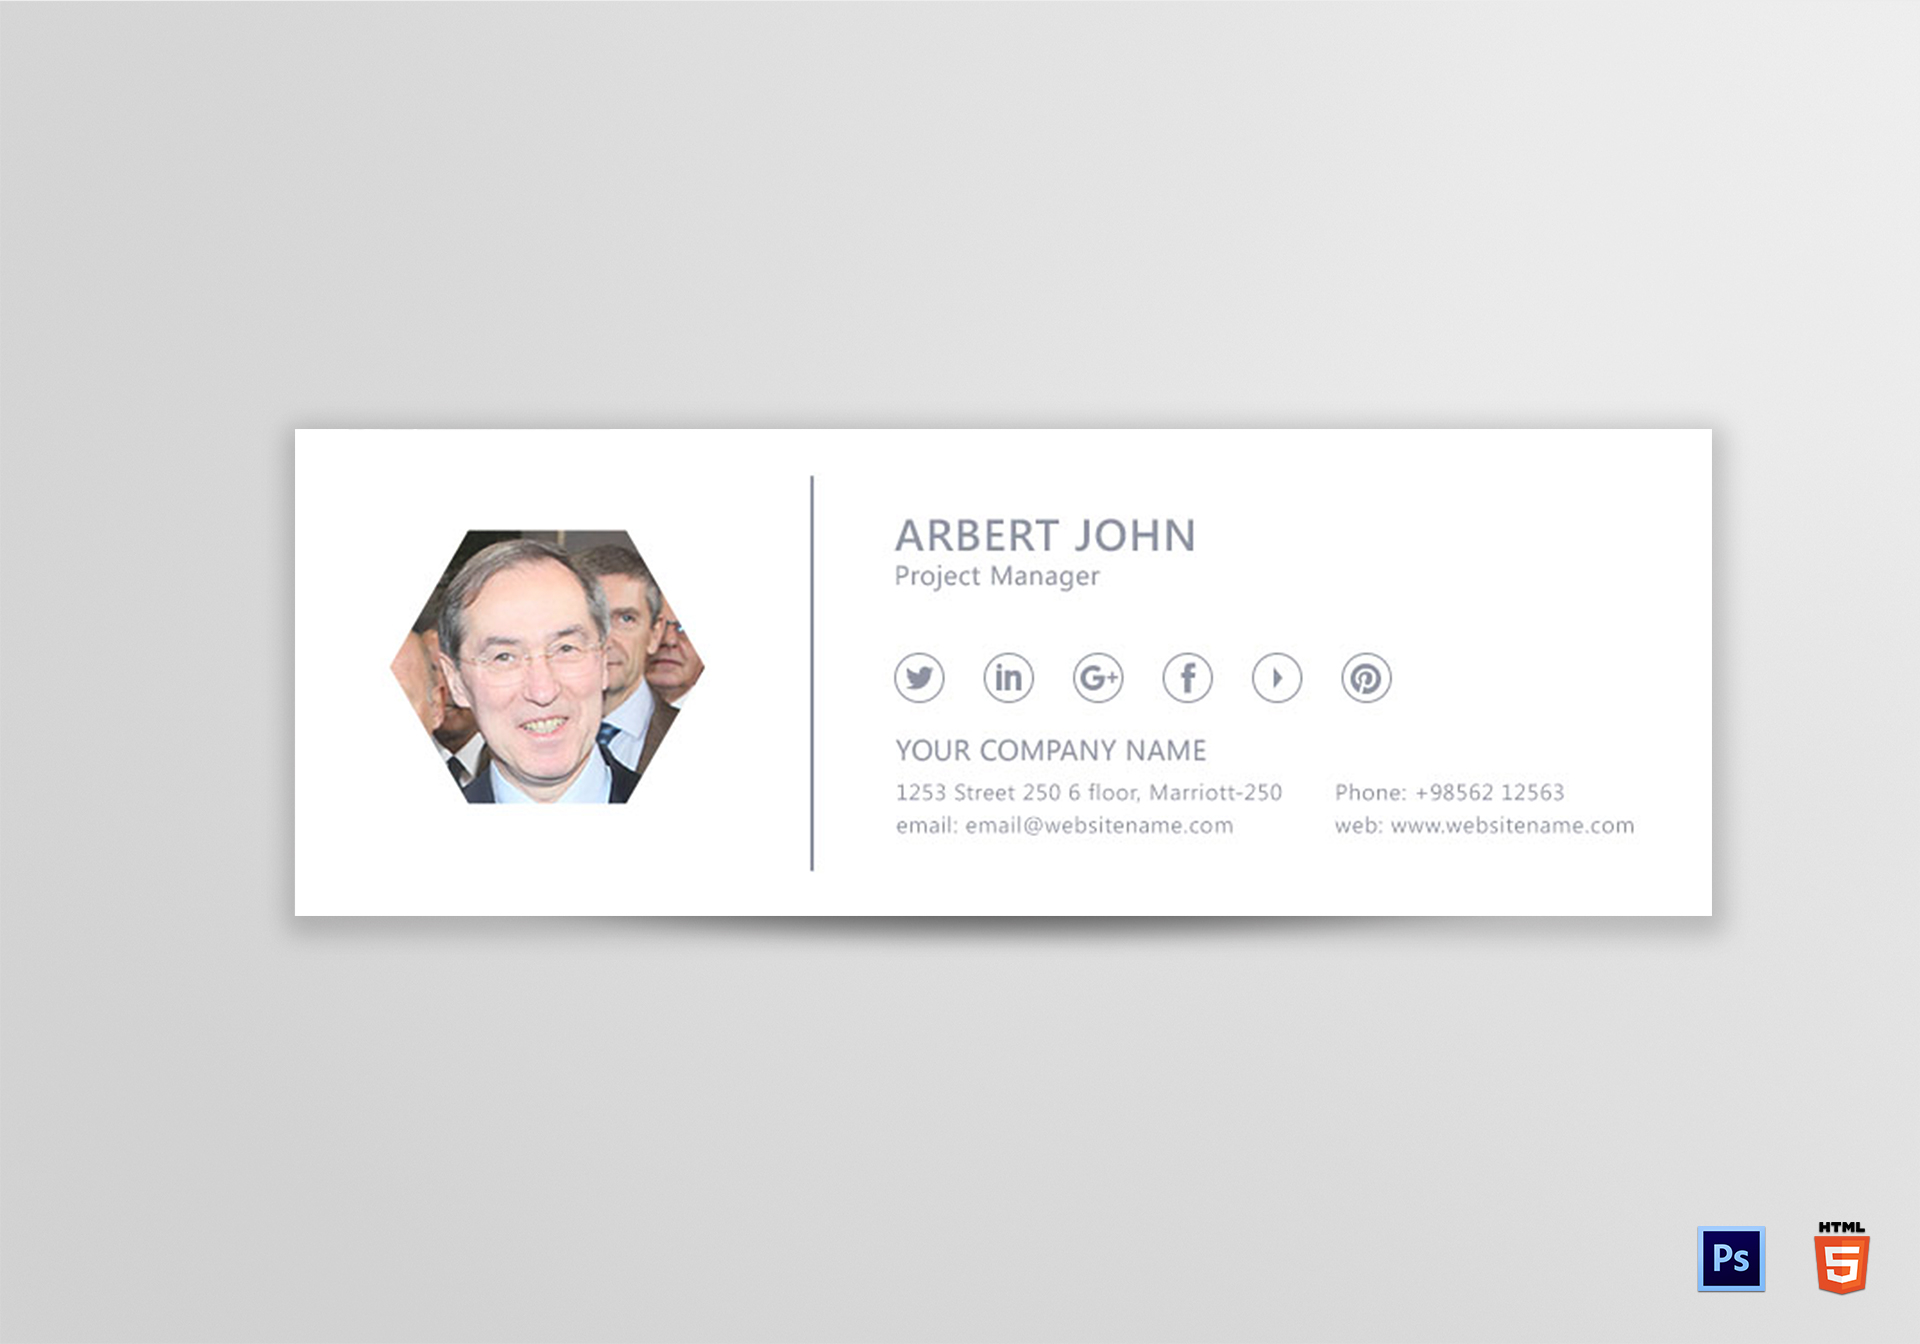 Project Manager Email Signature Design Template In Psd Html